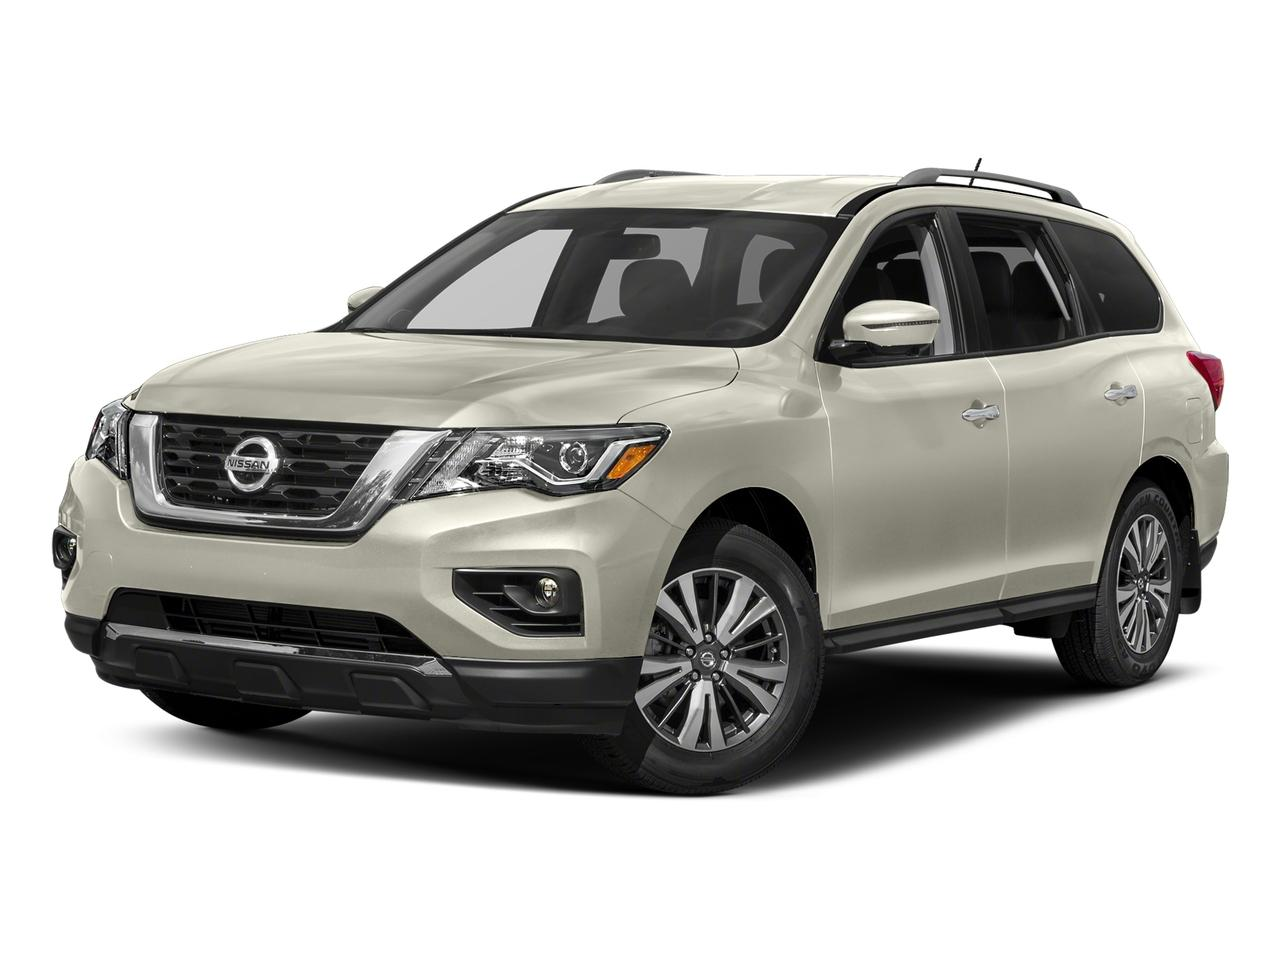 2018 Nissan Pathfinder Vehicle Photo in Spokane, WA 99207